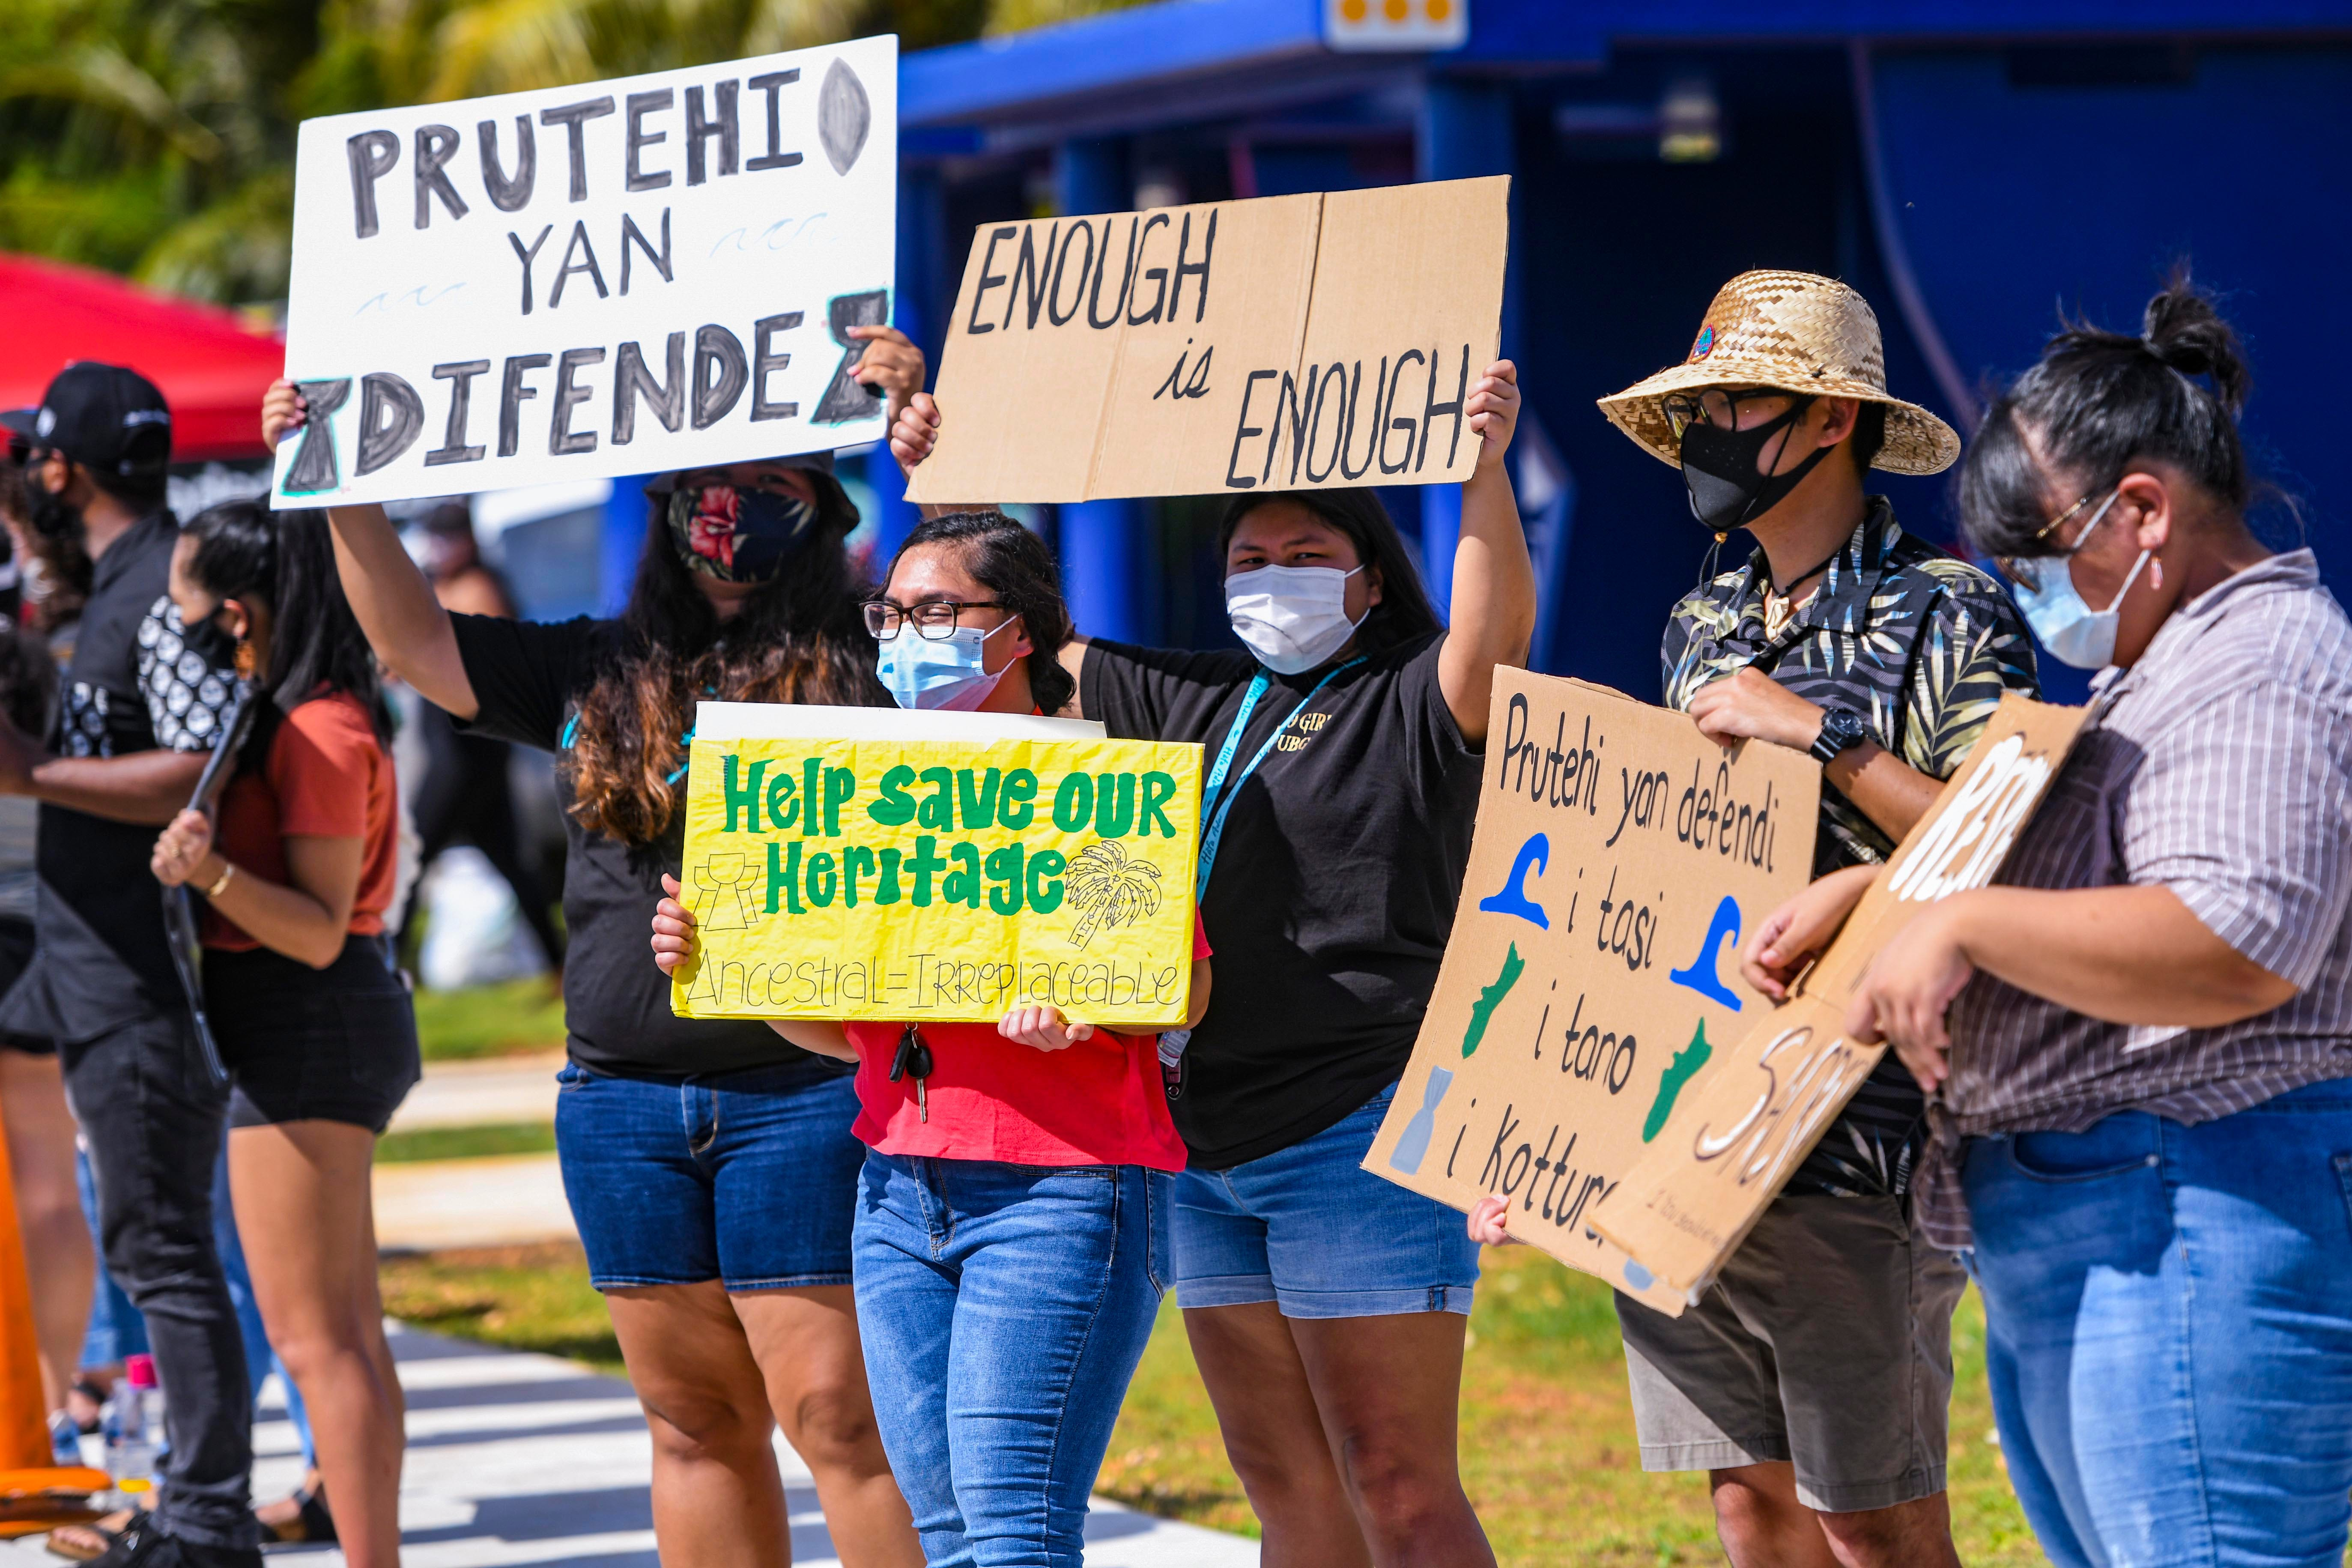 Dozens of residents line Route 3 in Dededo at a peaceful protest, held to speak out against the disruption of ancient CHamoru sites and the removal of associated artifacts during the construction of Marine Corps Camp Blaz, July 3, 2020.